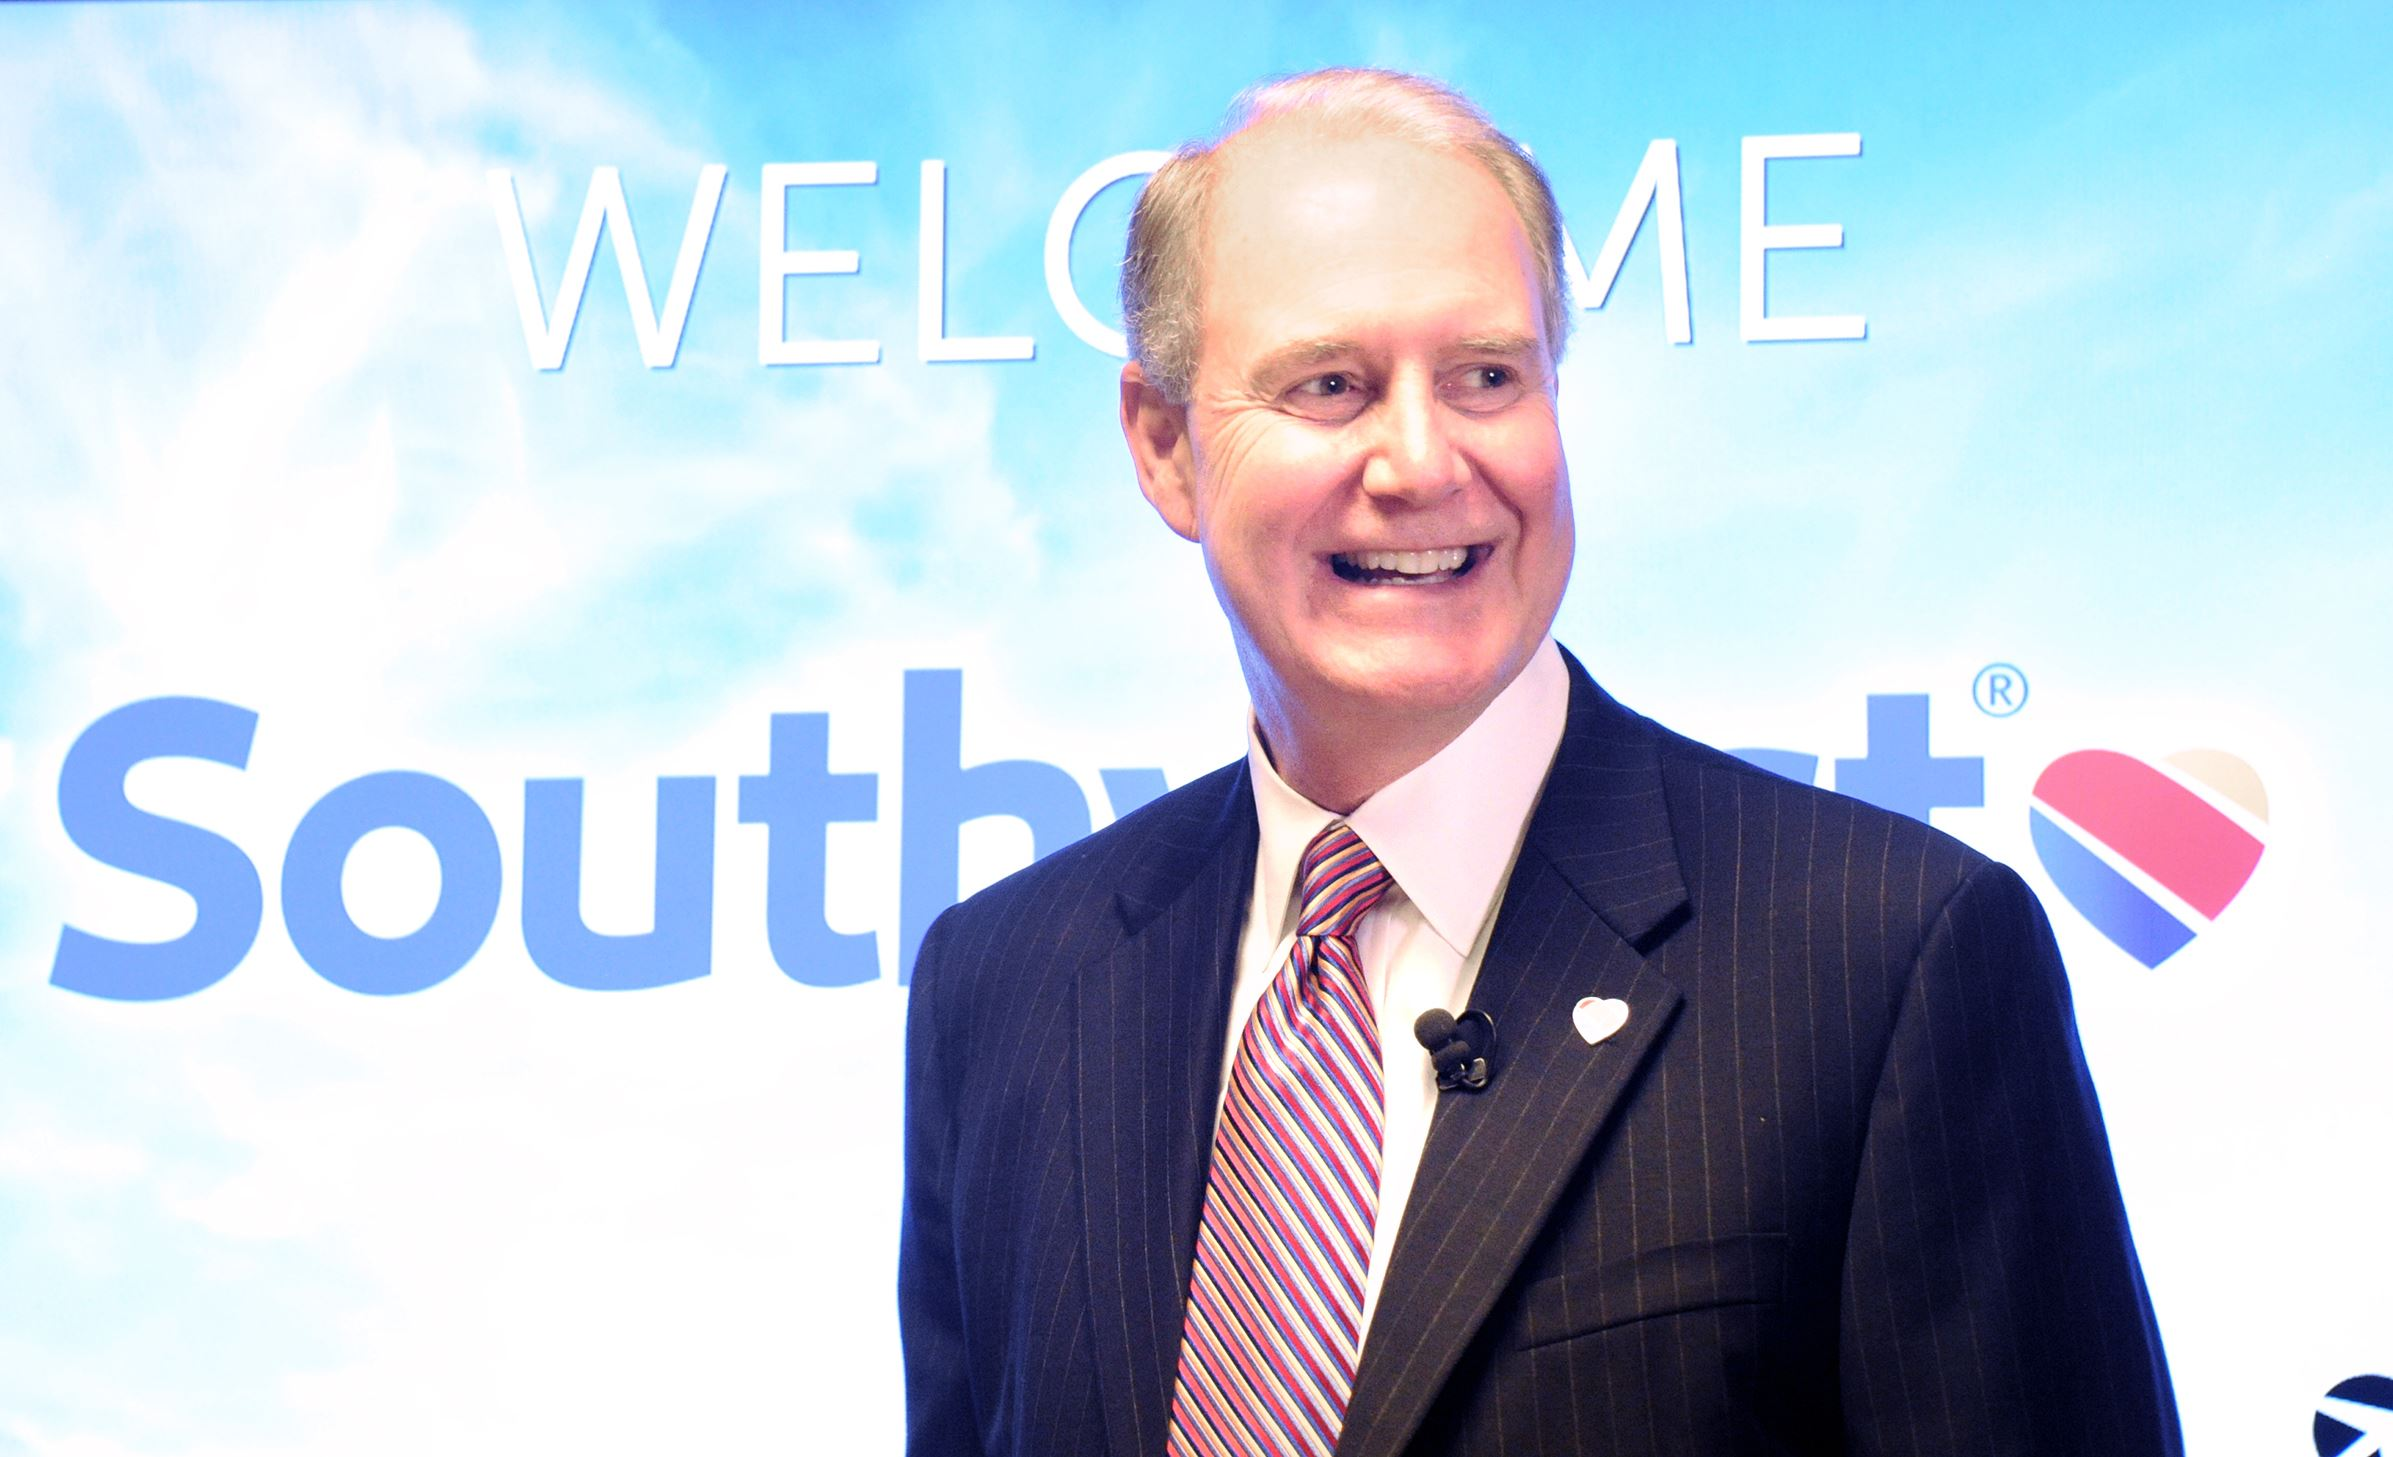 ceo gary kelly and southwest airlines essay Gary kelly discusses changes that have taken place at southwest airlines and within the industry since he last spoke to host lee cullum on ceo in 2008 kelly shares details about the tragic accident on southwest flight 1380 in april 2018 that led to the death of a passenger.